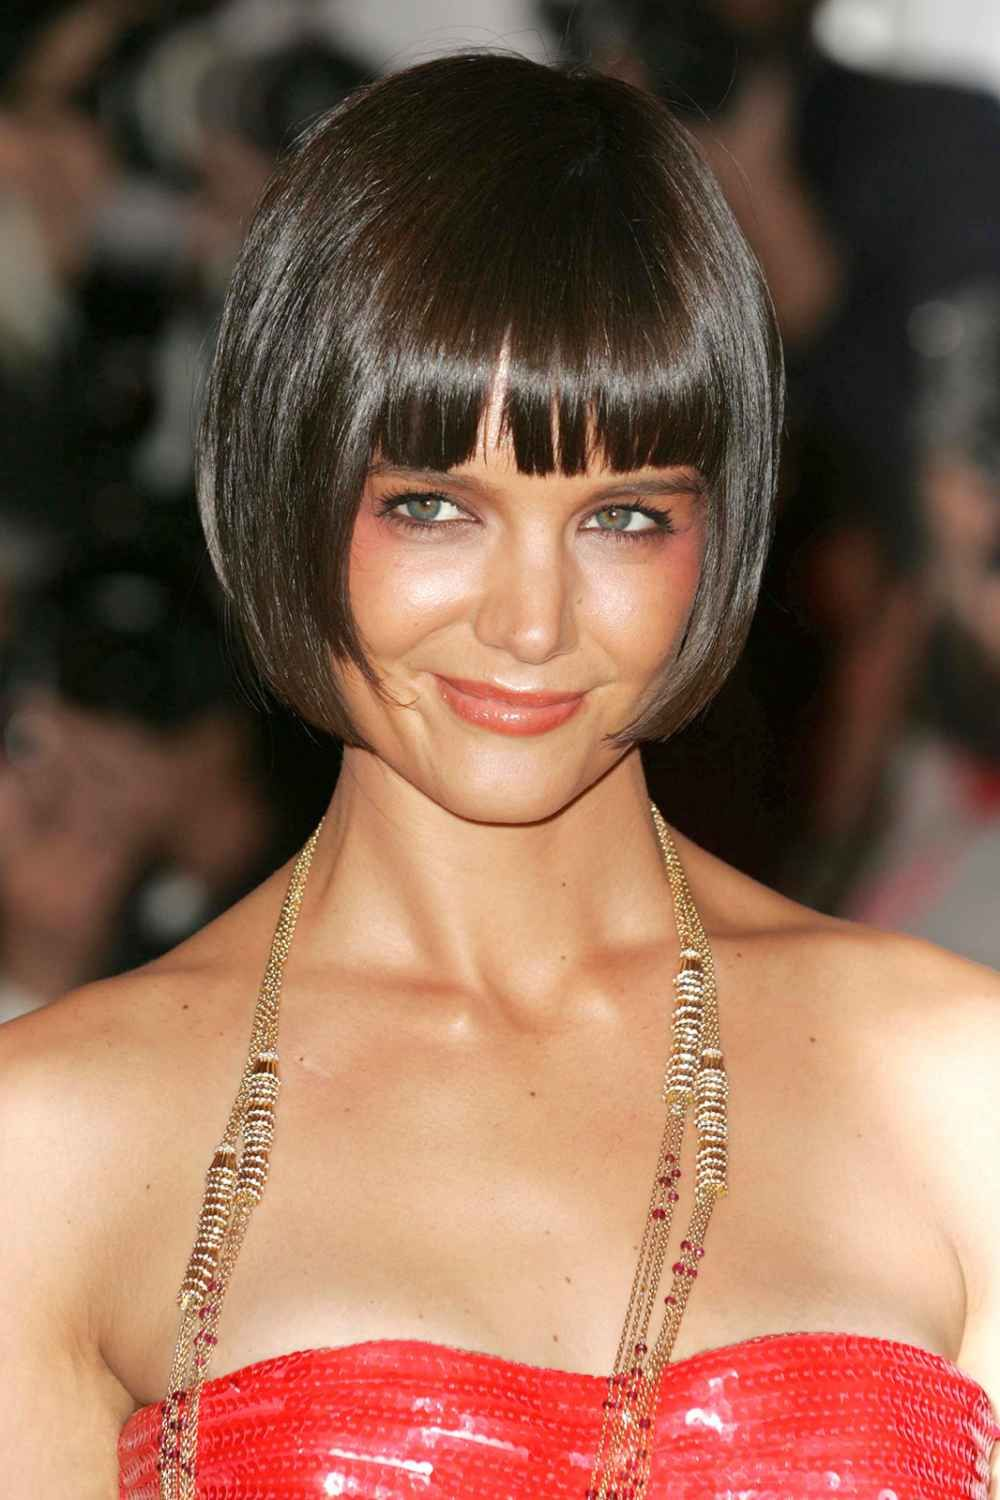 Best Celebrity Makeunders - Celebs With No Makeup   Katie holmes haircut, Celebrity short hair ...